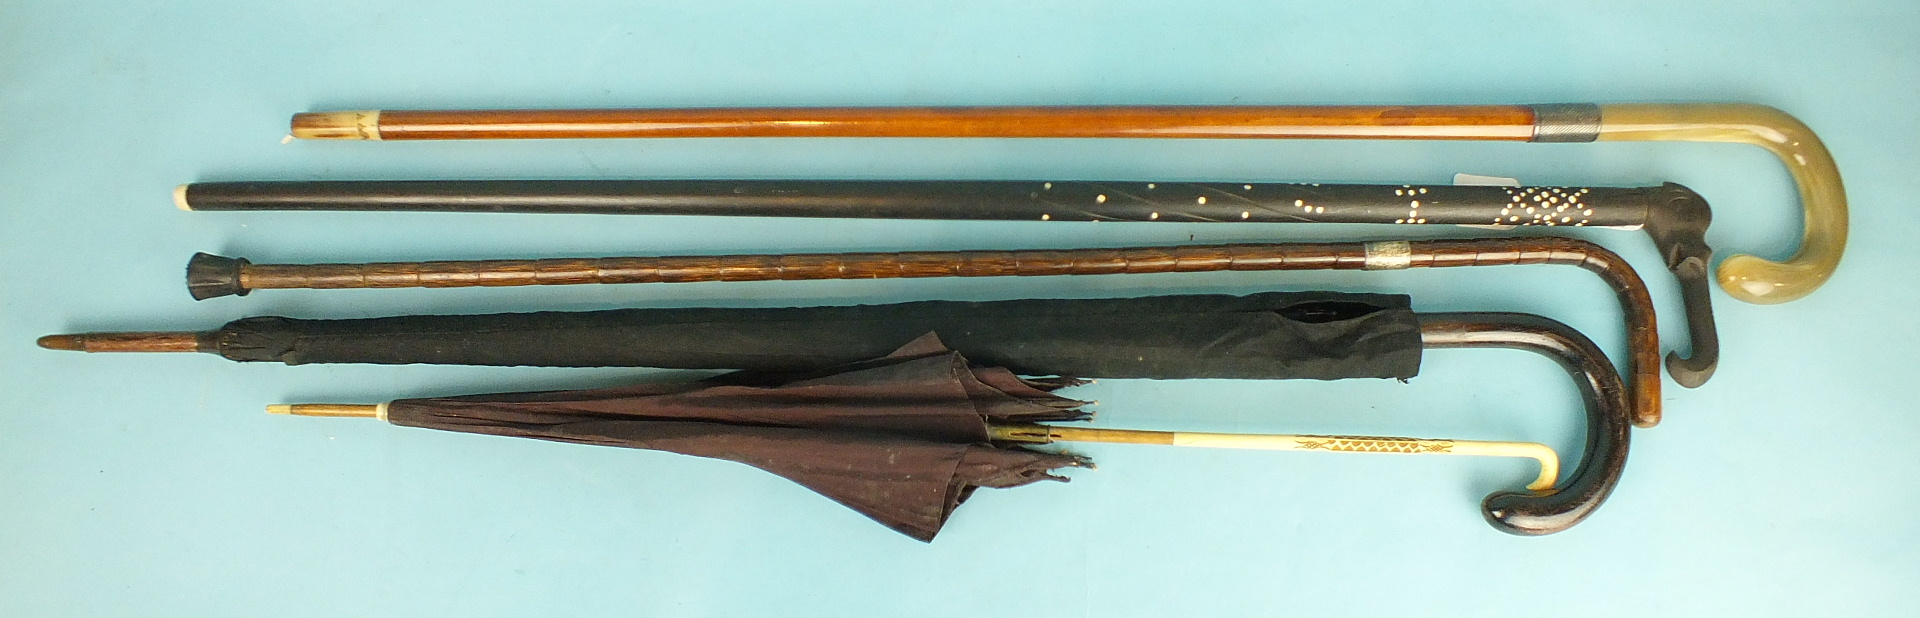 Lot 157 - A good quality Malacca walking cane with horn handle and ferrule, the silver mount engraved